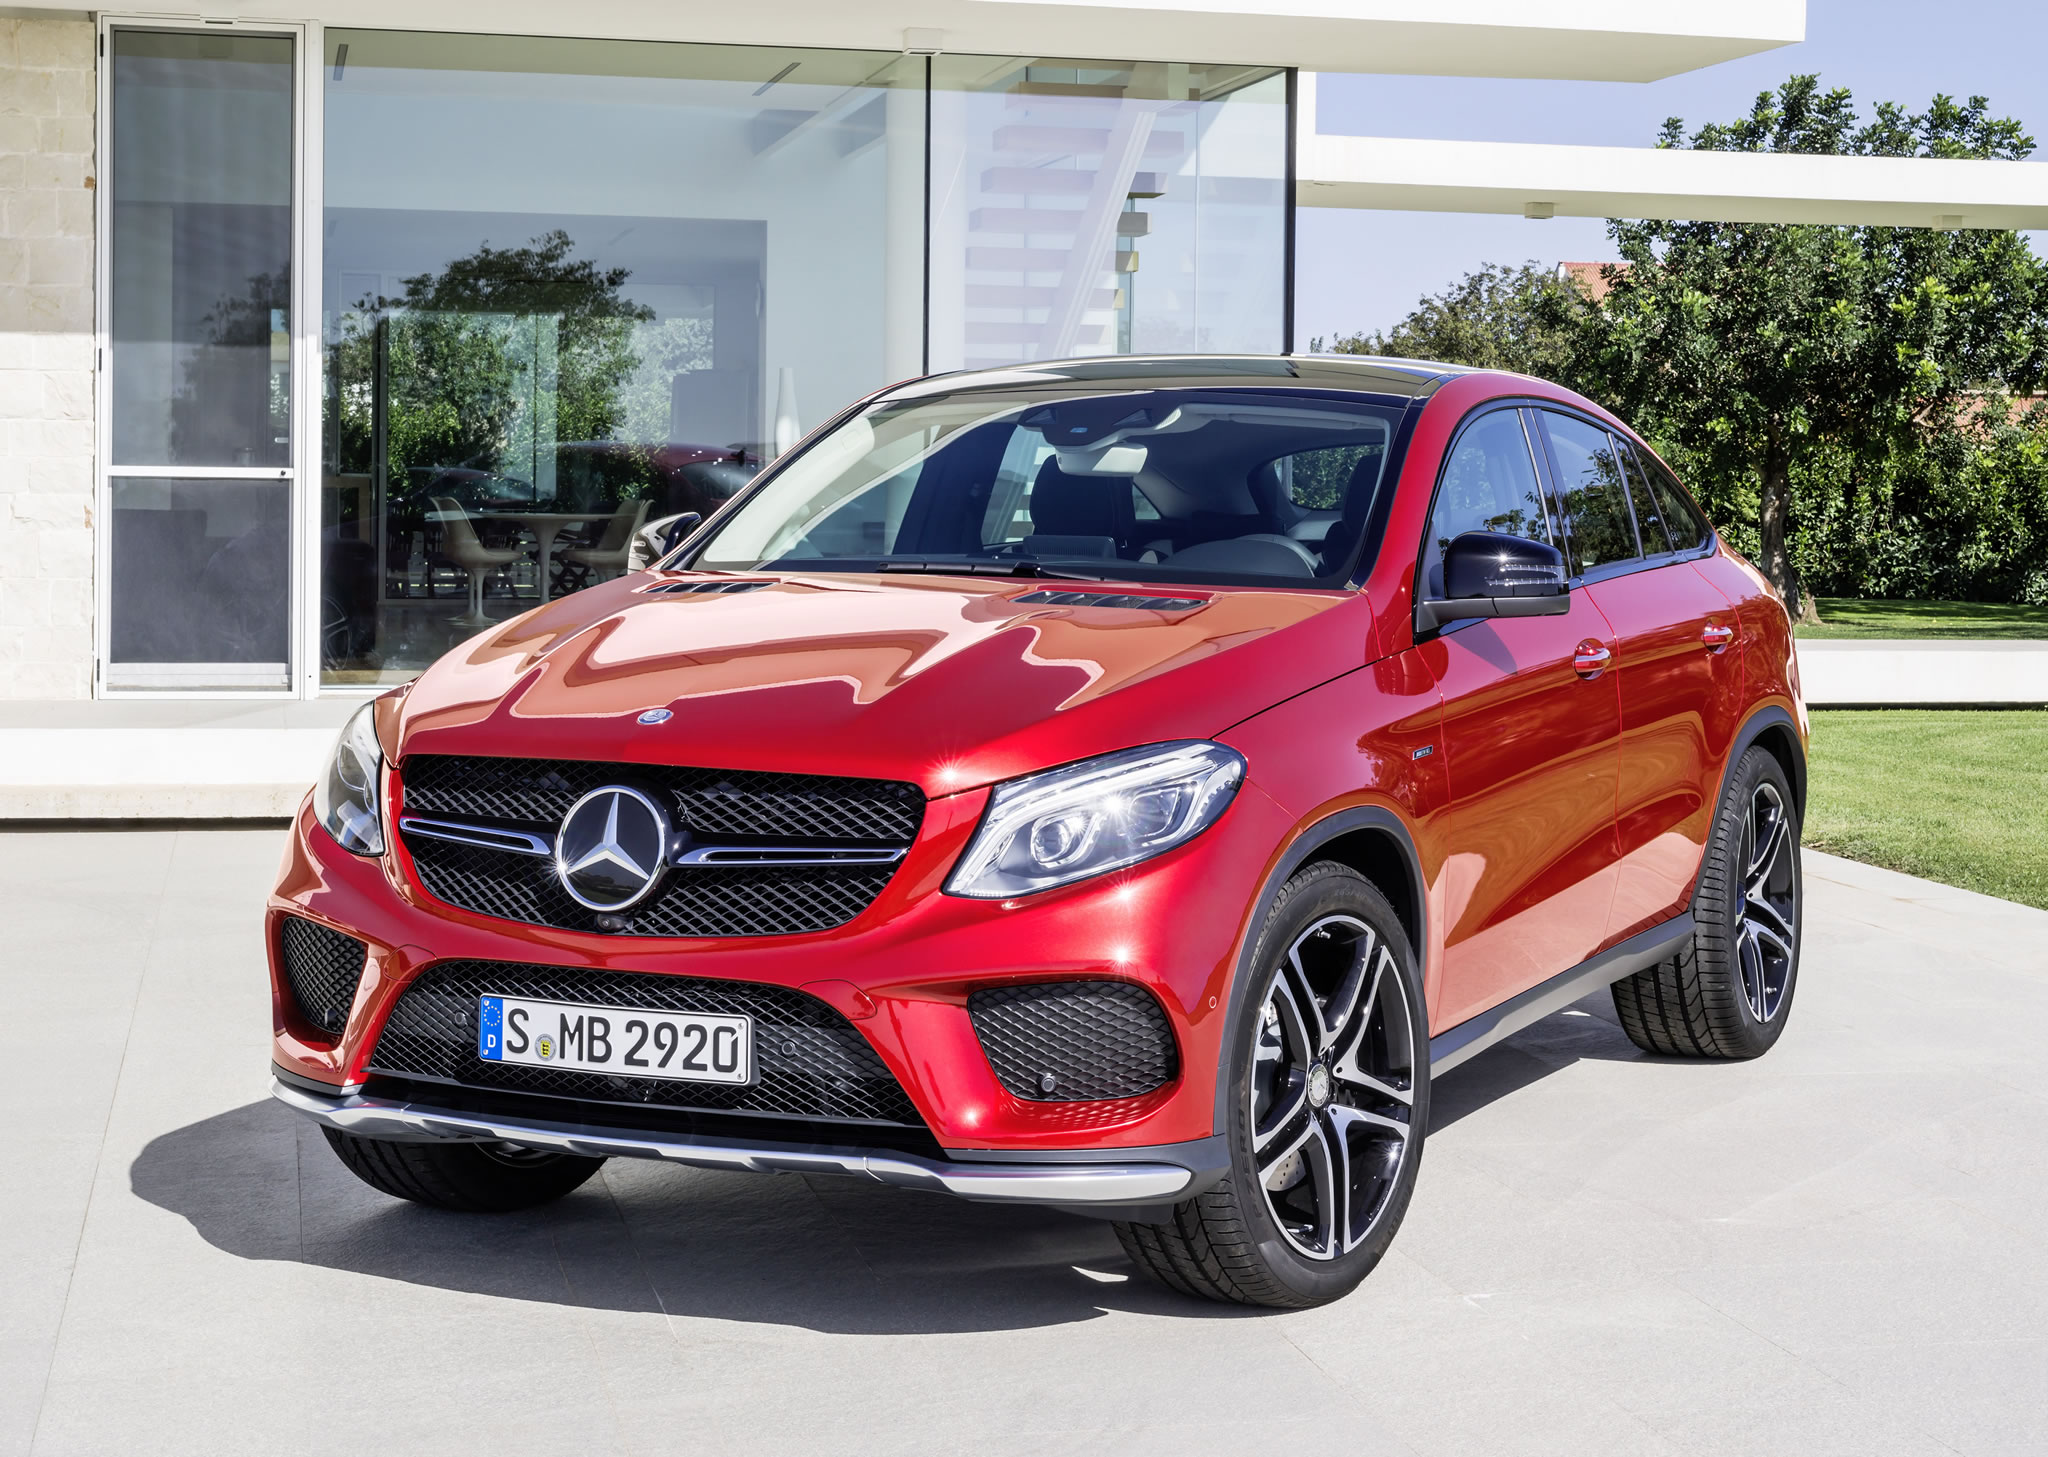 2016 mercedes benz gle 450 amg coupe front photo designo hyacinth red metallic color size. Black Bedroom Furniture Sets. Home Design Ideas